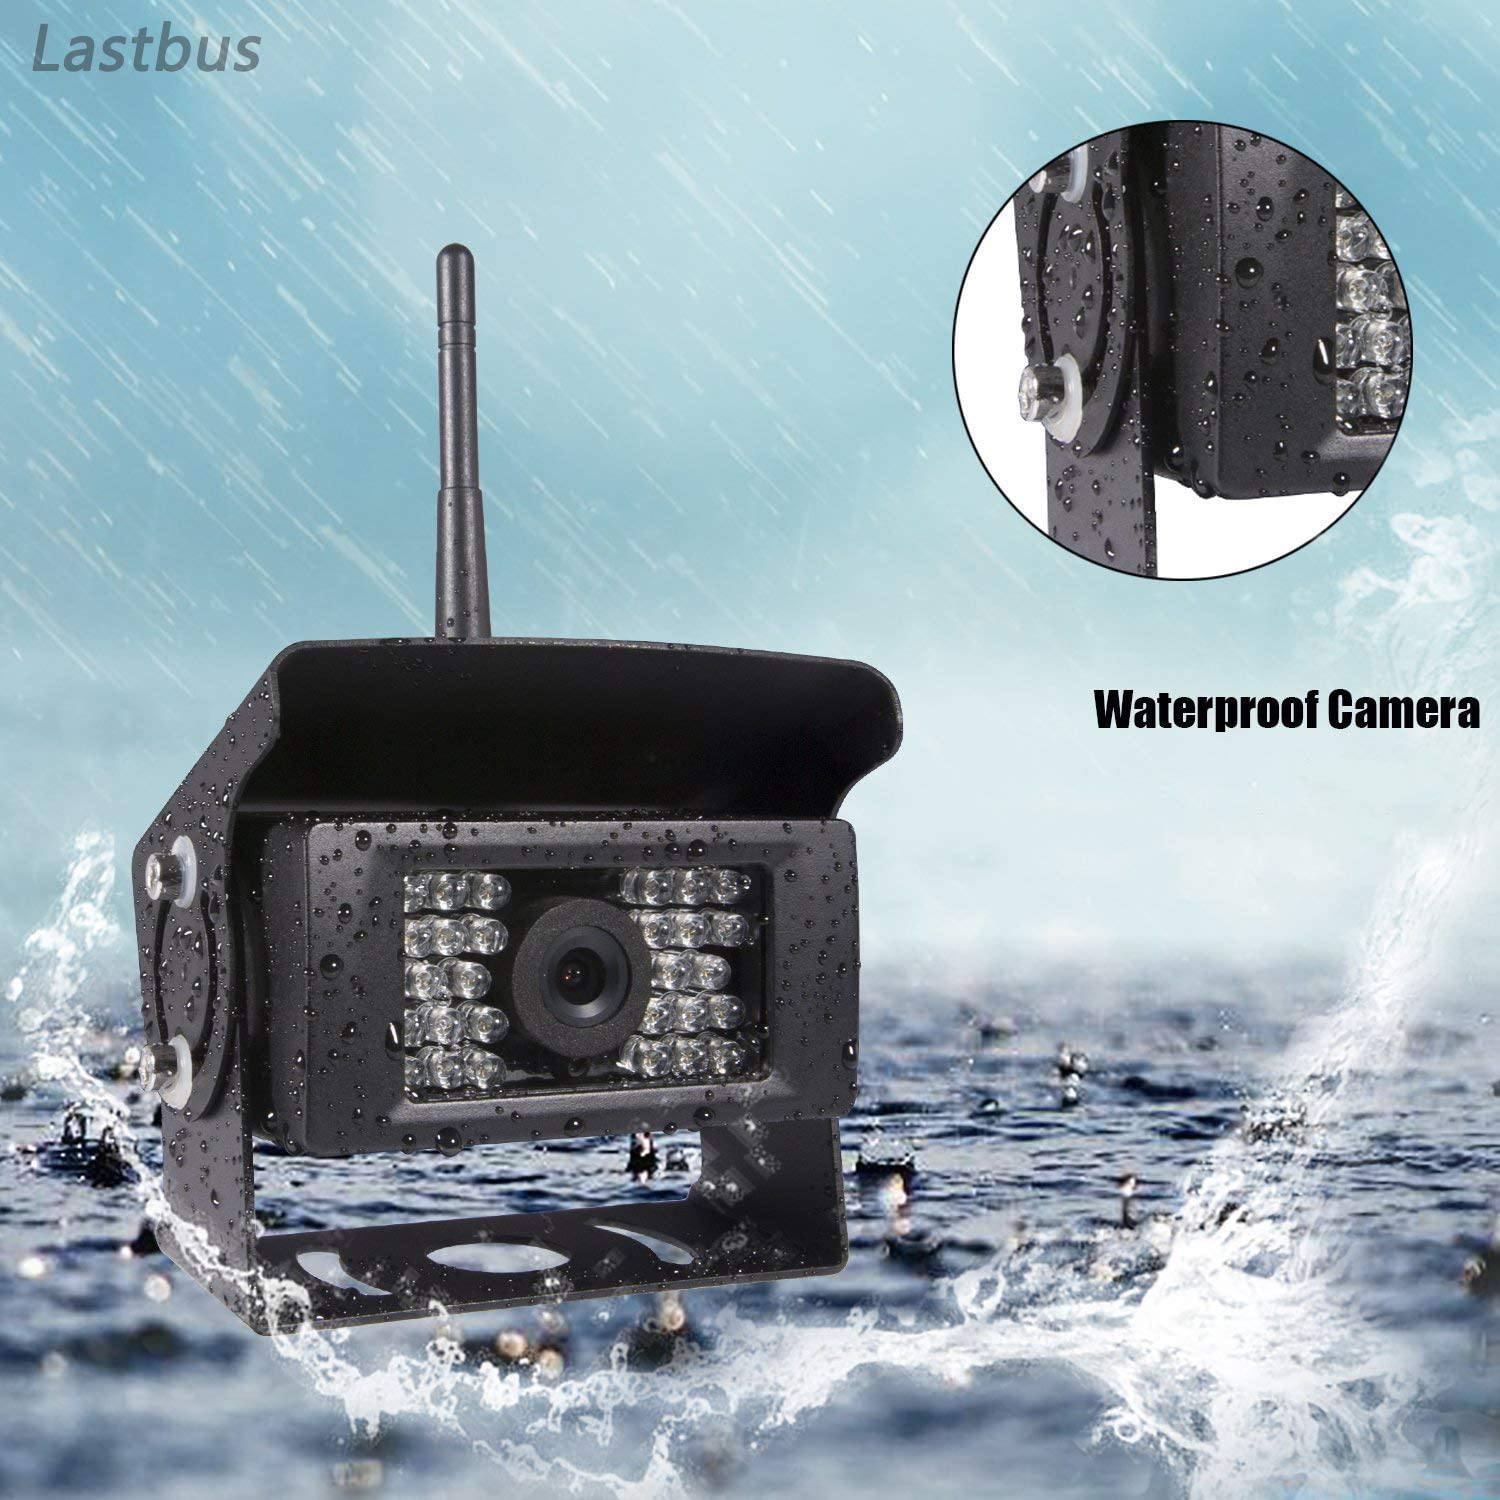 Wireless Backup Camera Lastbus Night Vision Wide View Angle Waterproof WiFi Rear View Camera for iPhone iPad Android Phone Tablet